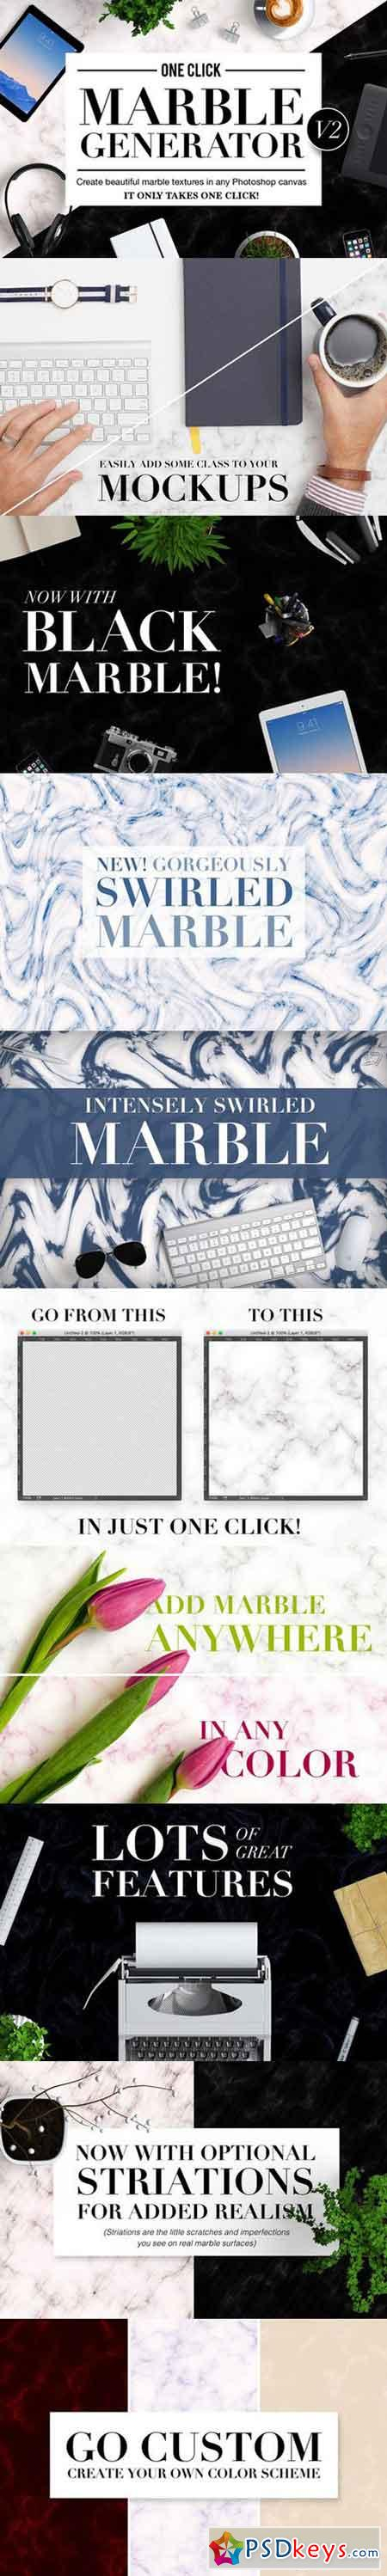 OneClick Marble Texture Generator V2 591150